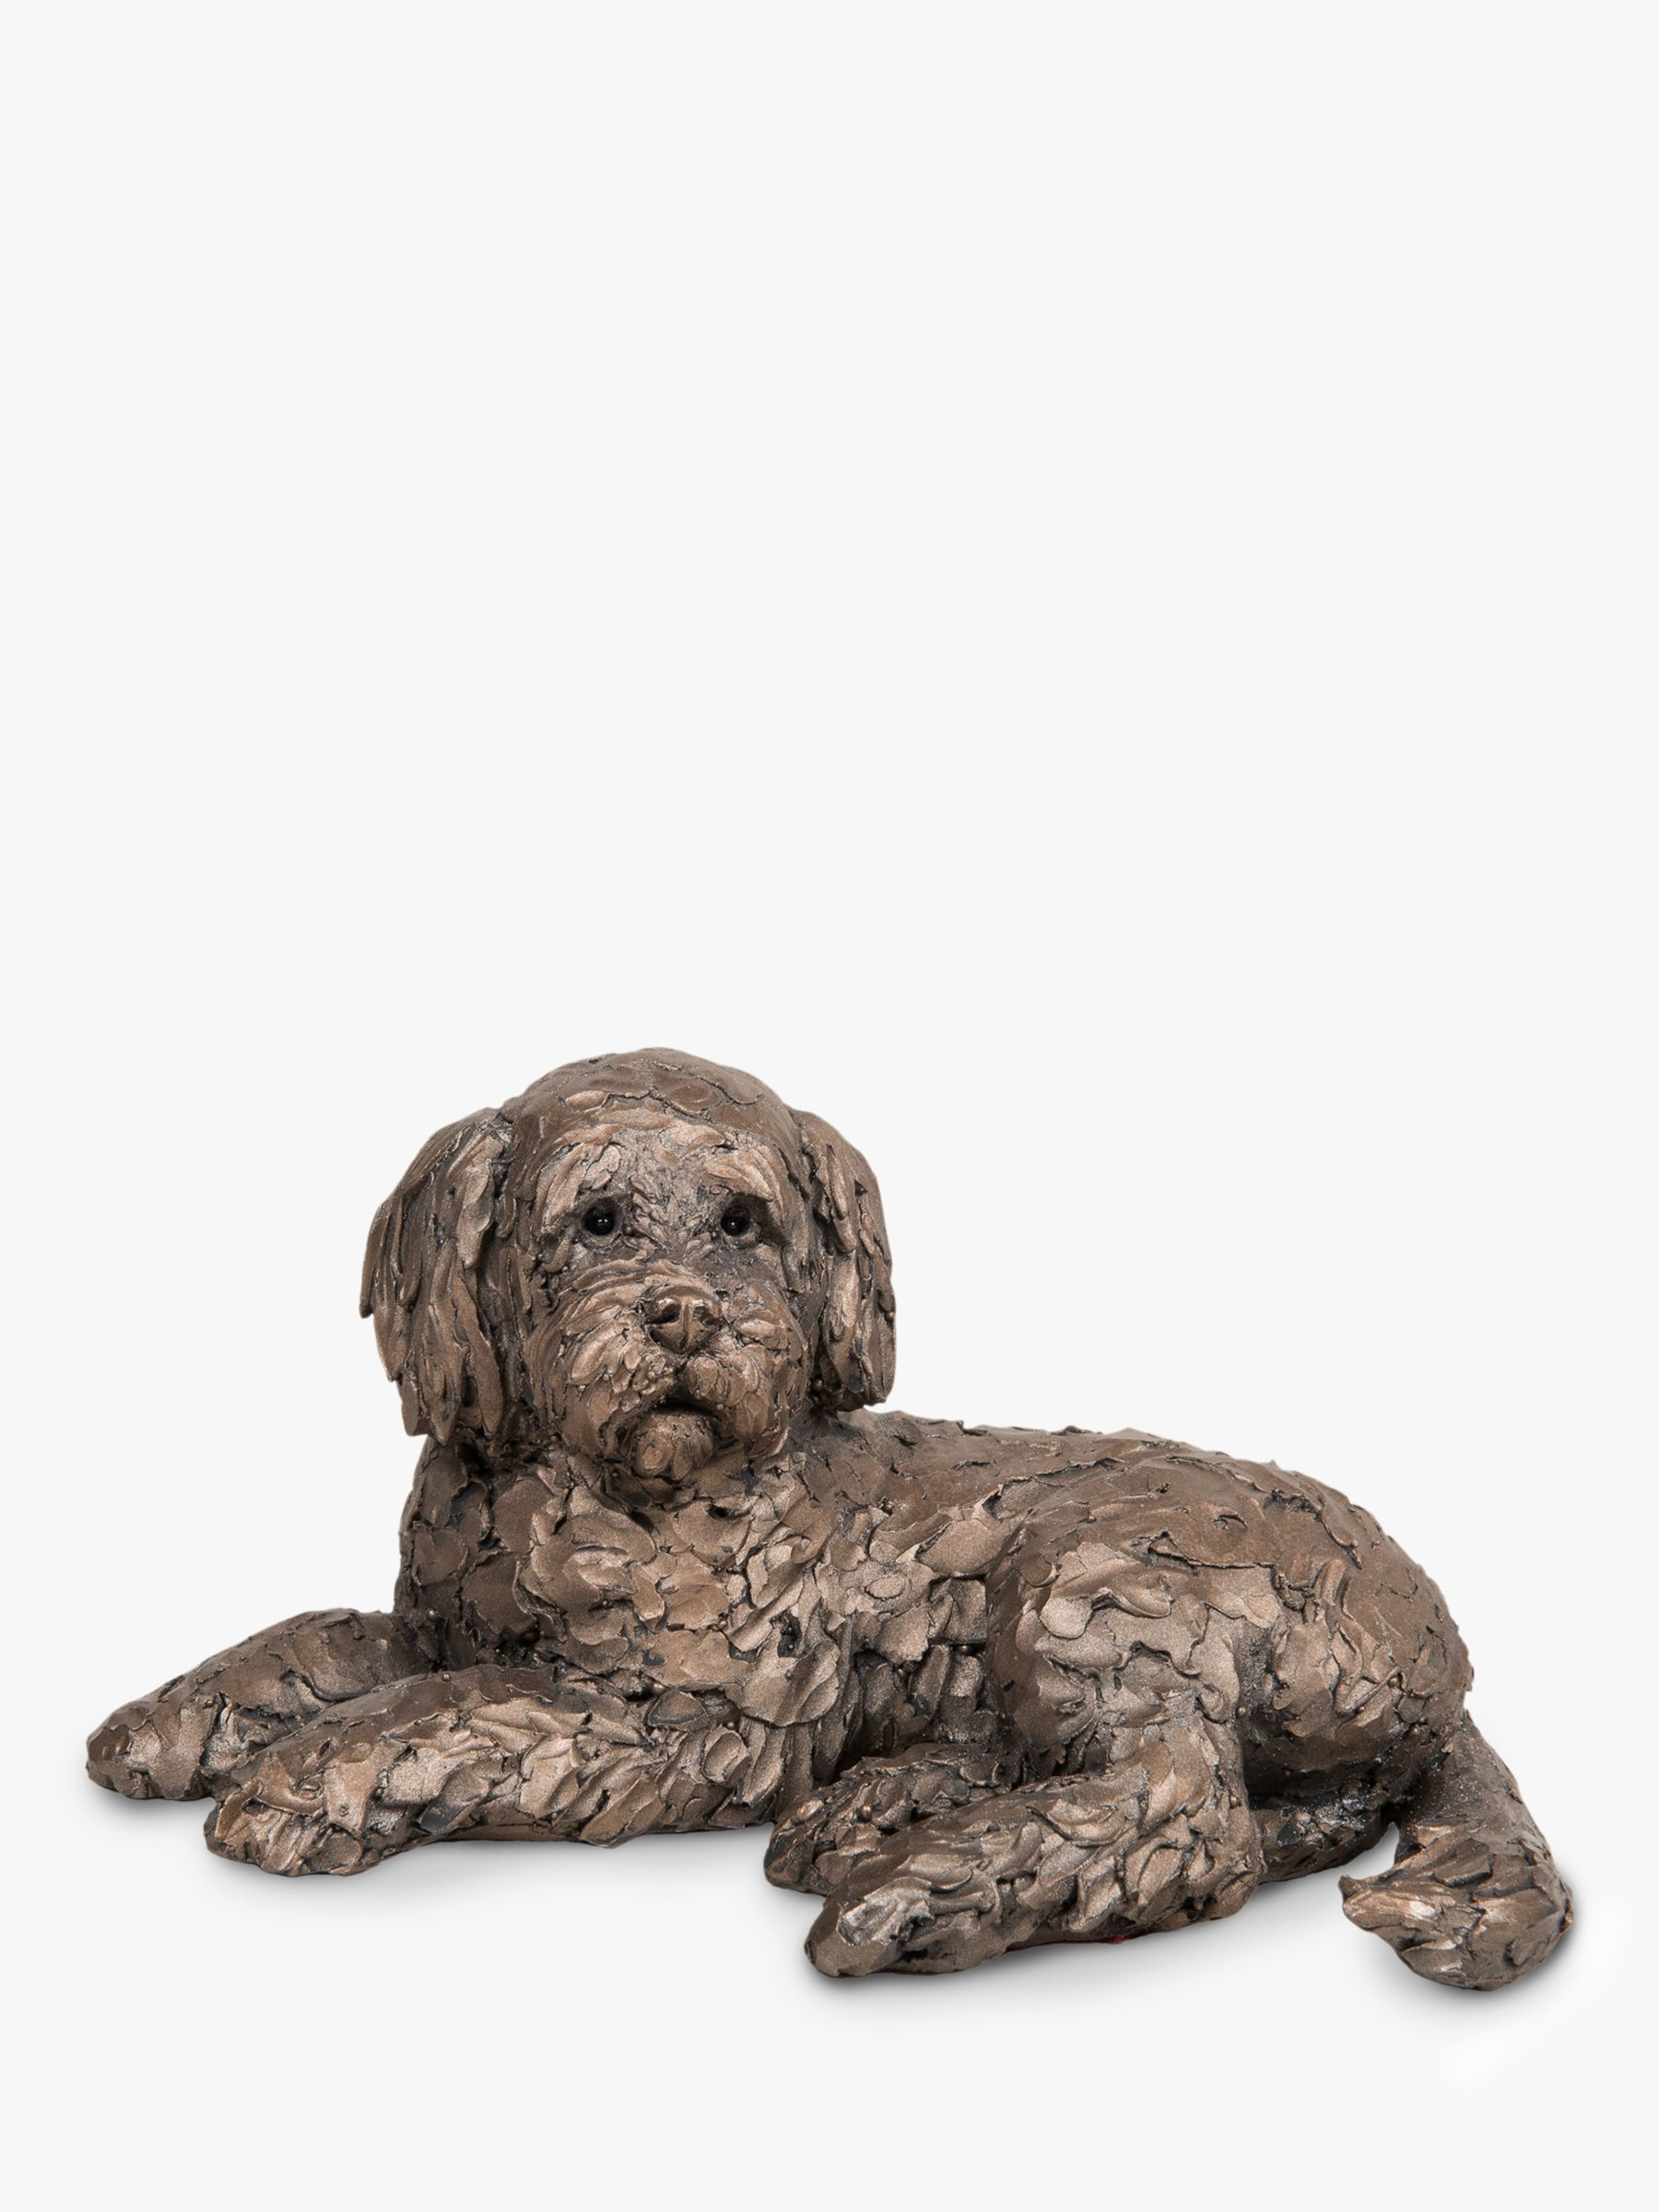 Frith Sculpture Frith Sculpture Ozzy Labradoodle Sculpture, Bronze